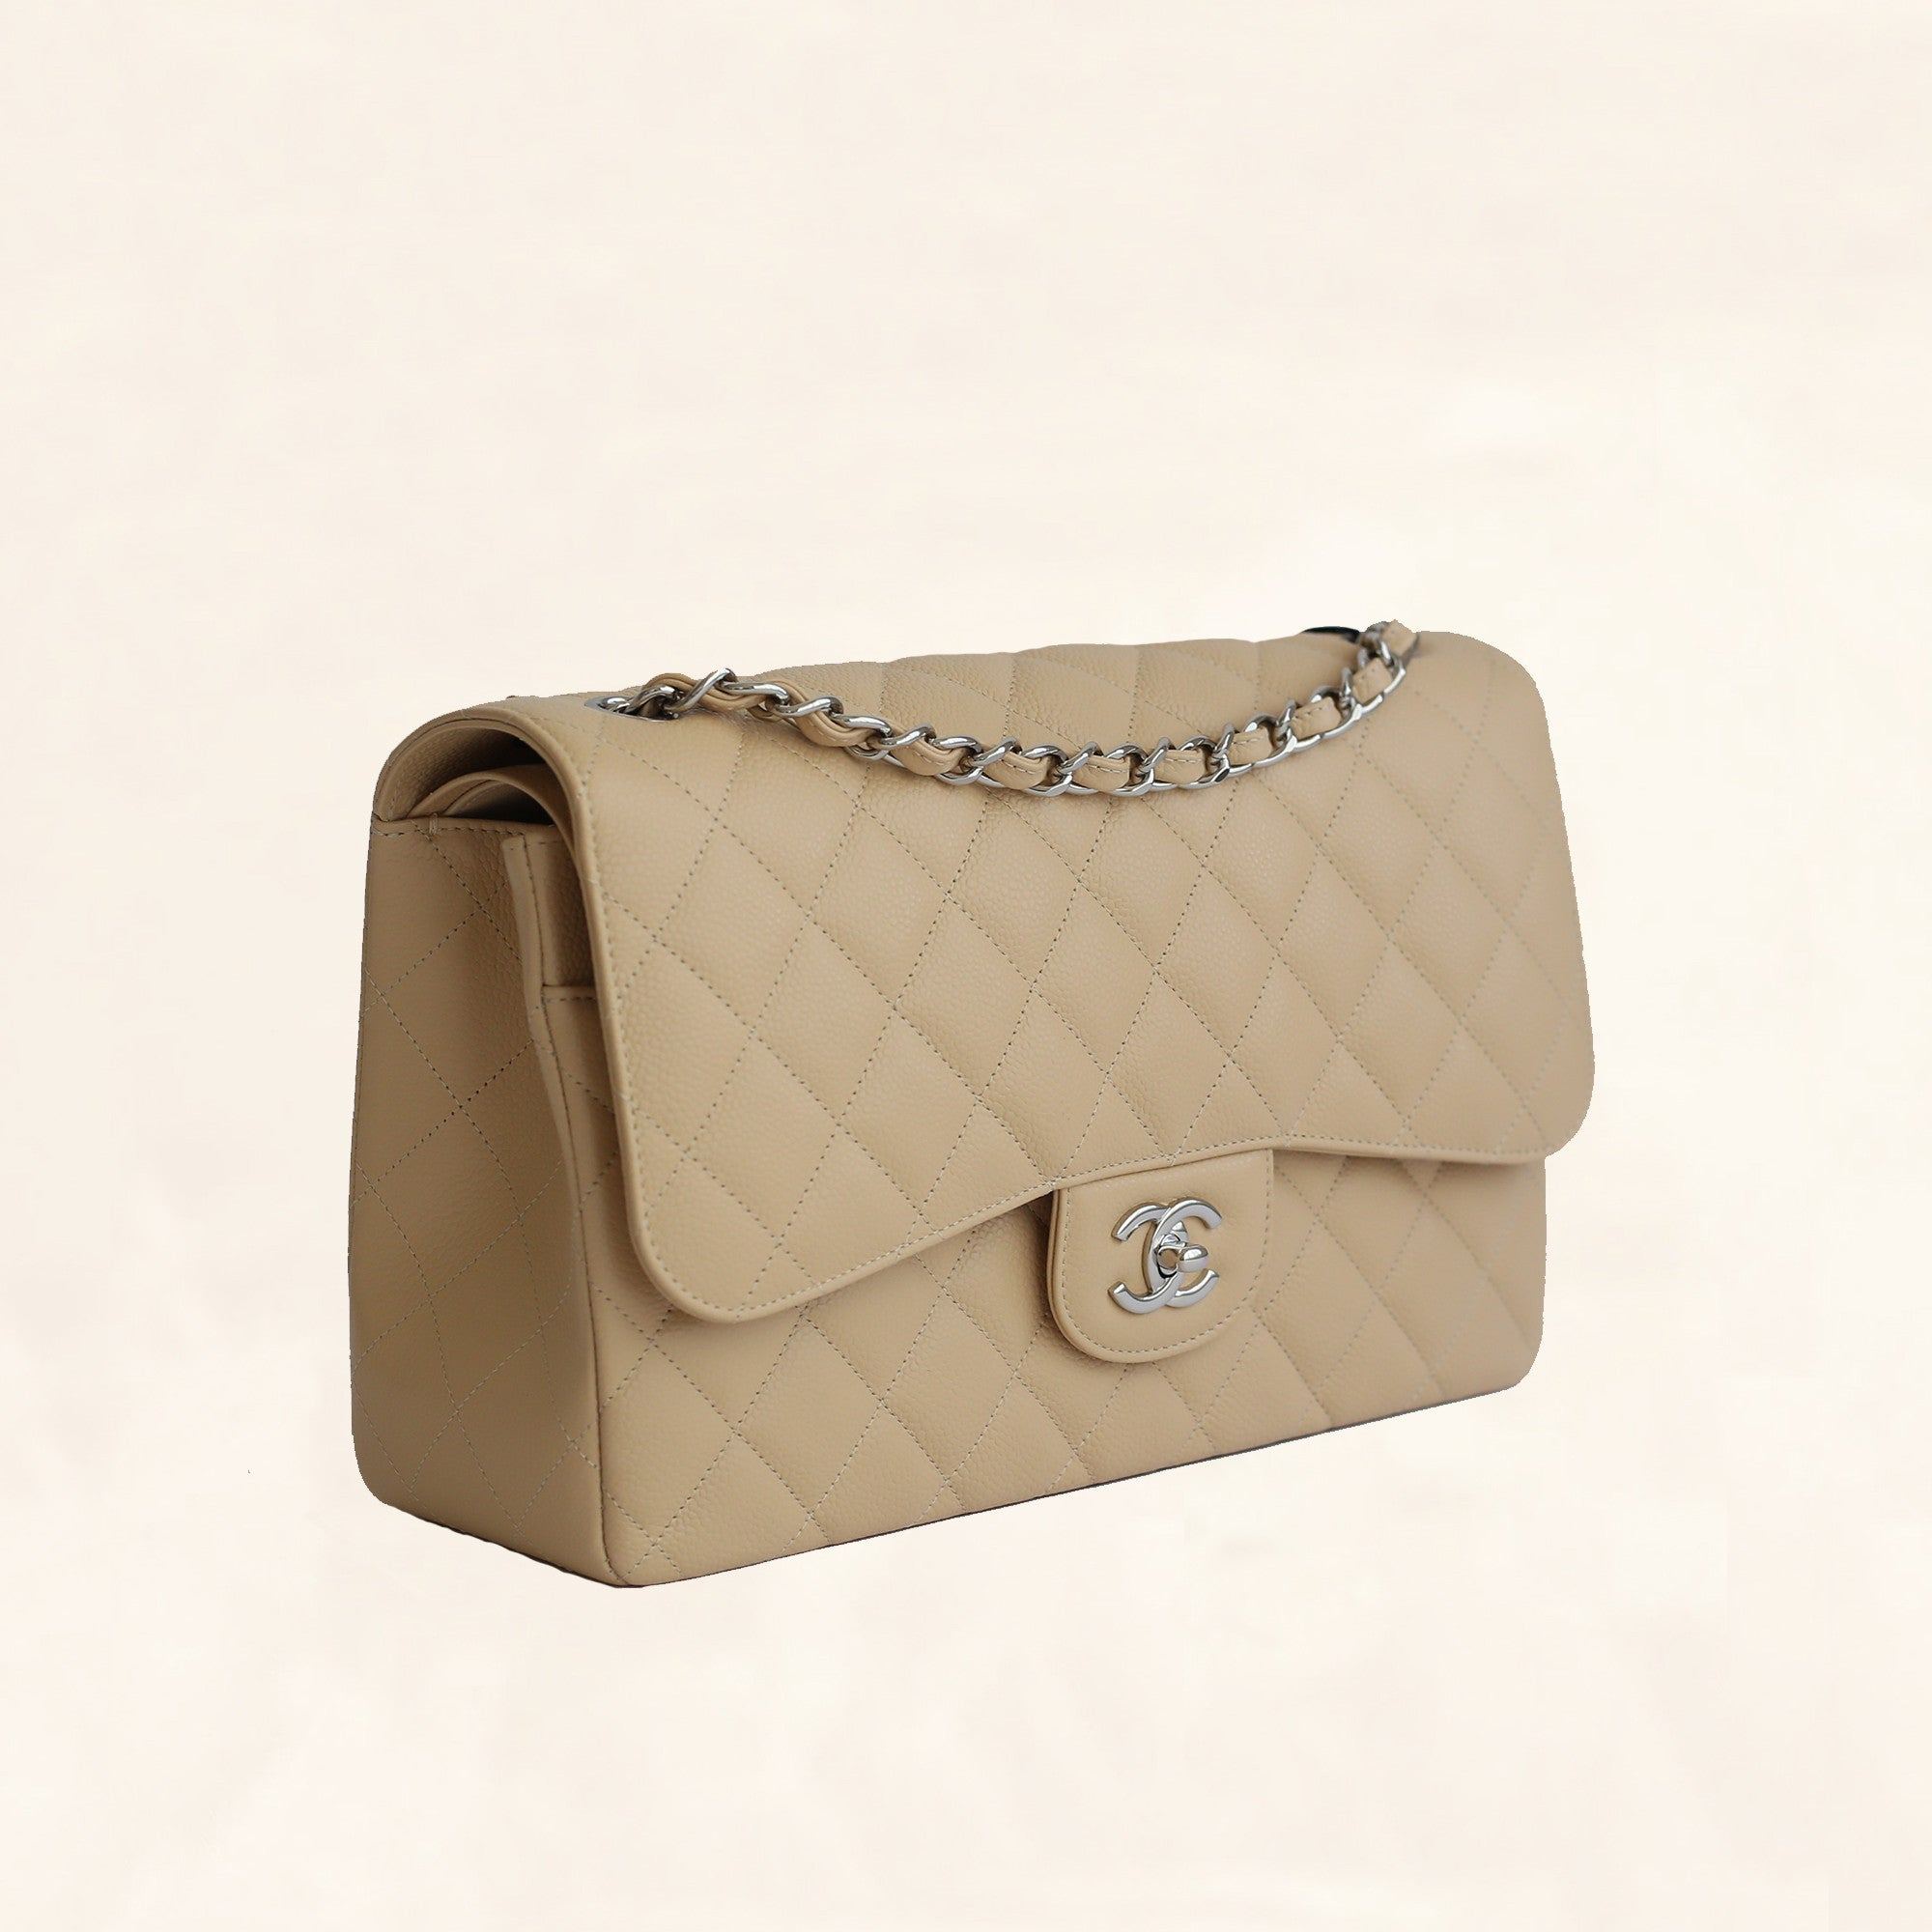 9cd0e6c231a2f4 Chanel | Beige Caviar Classic Double Flap Bag | Jumbo - The-Collectory